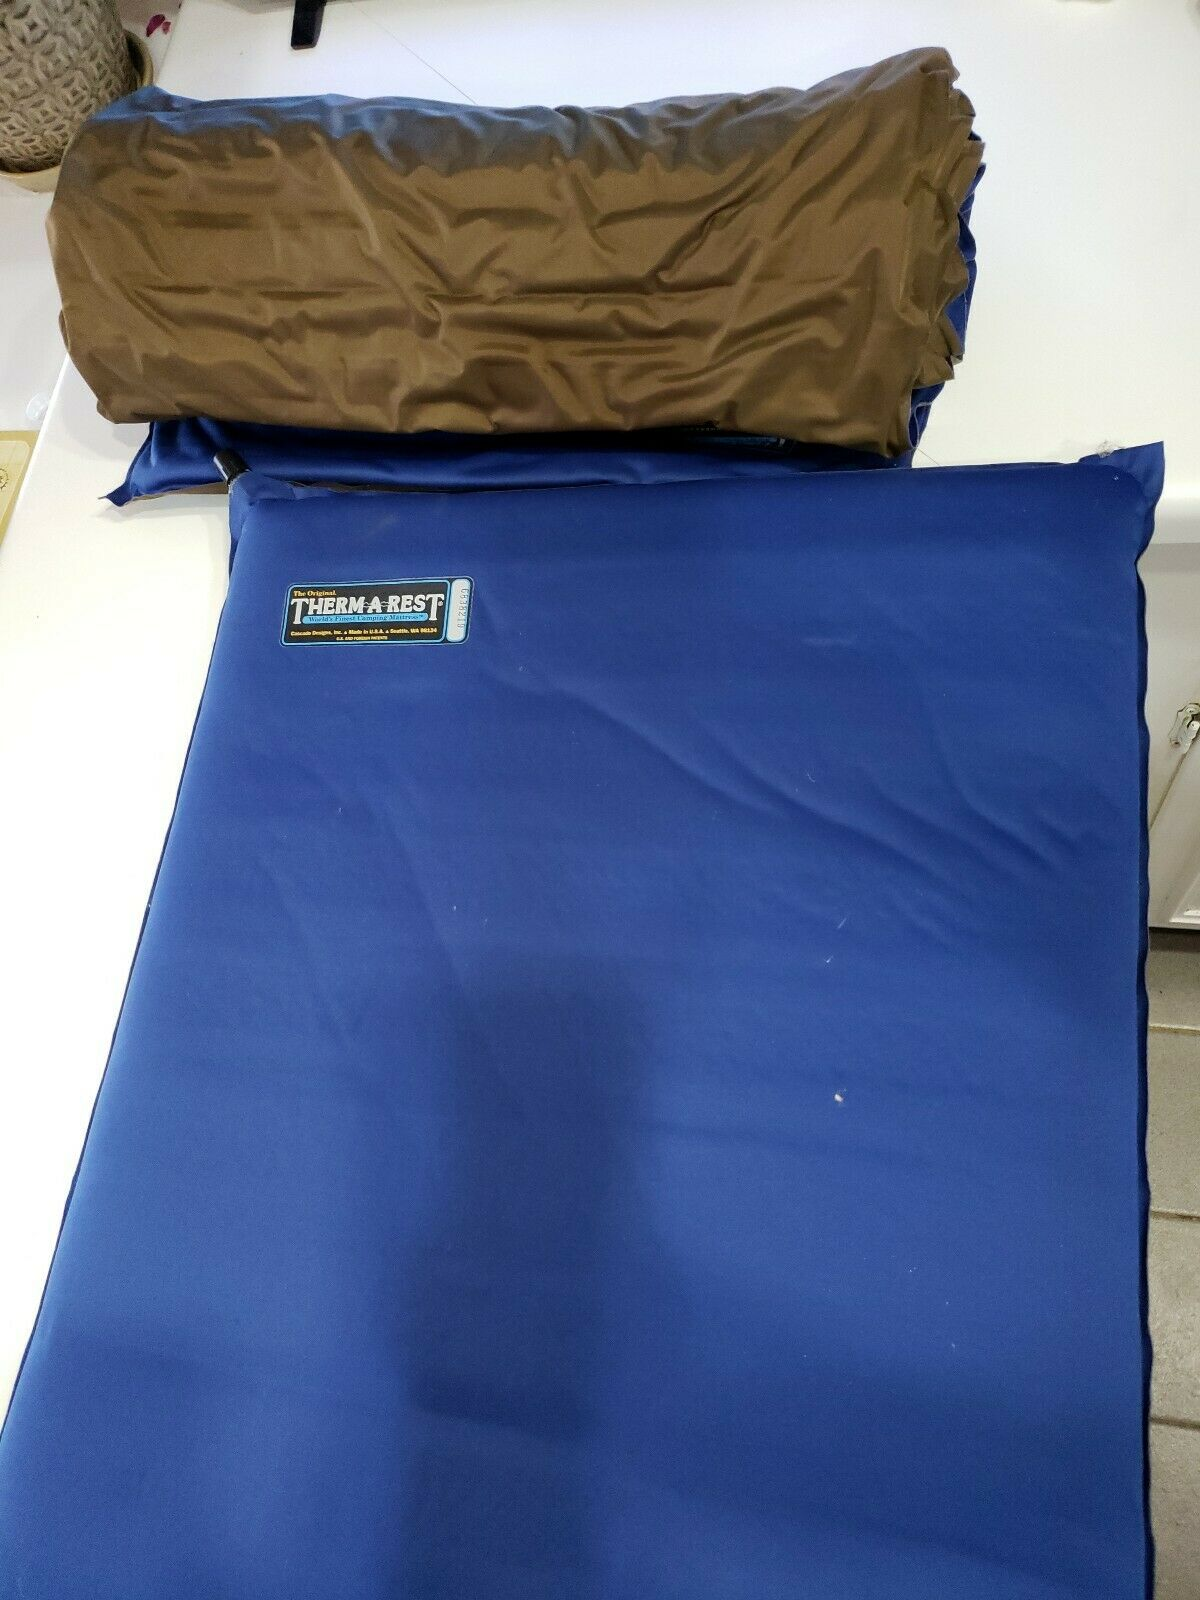 Pair of Therm-a-Rest Sleeping Pad - 20x72